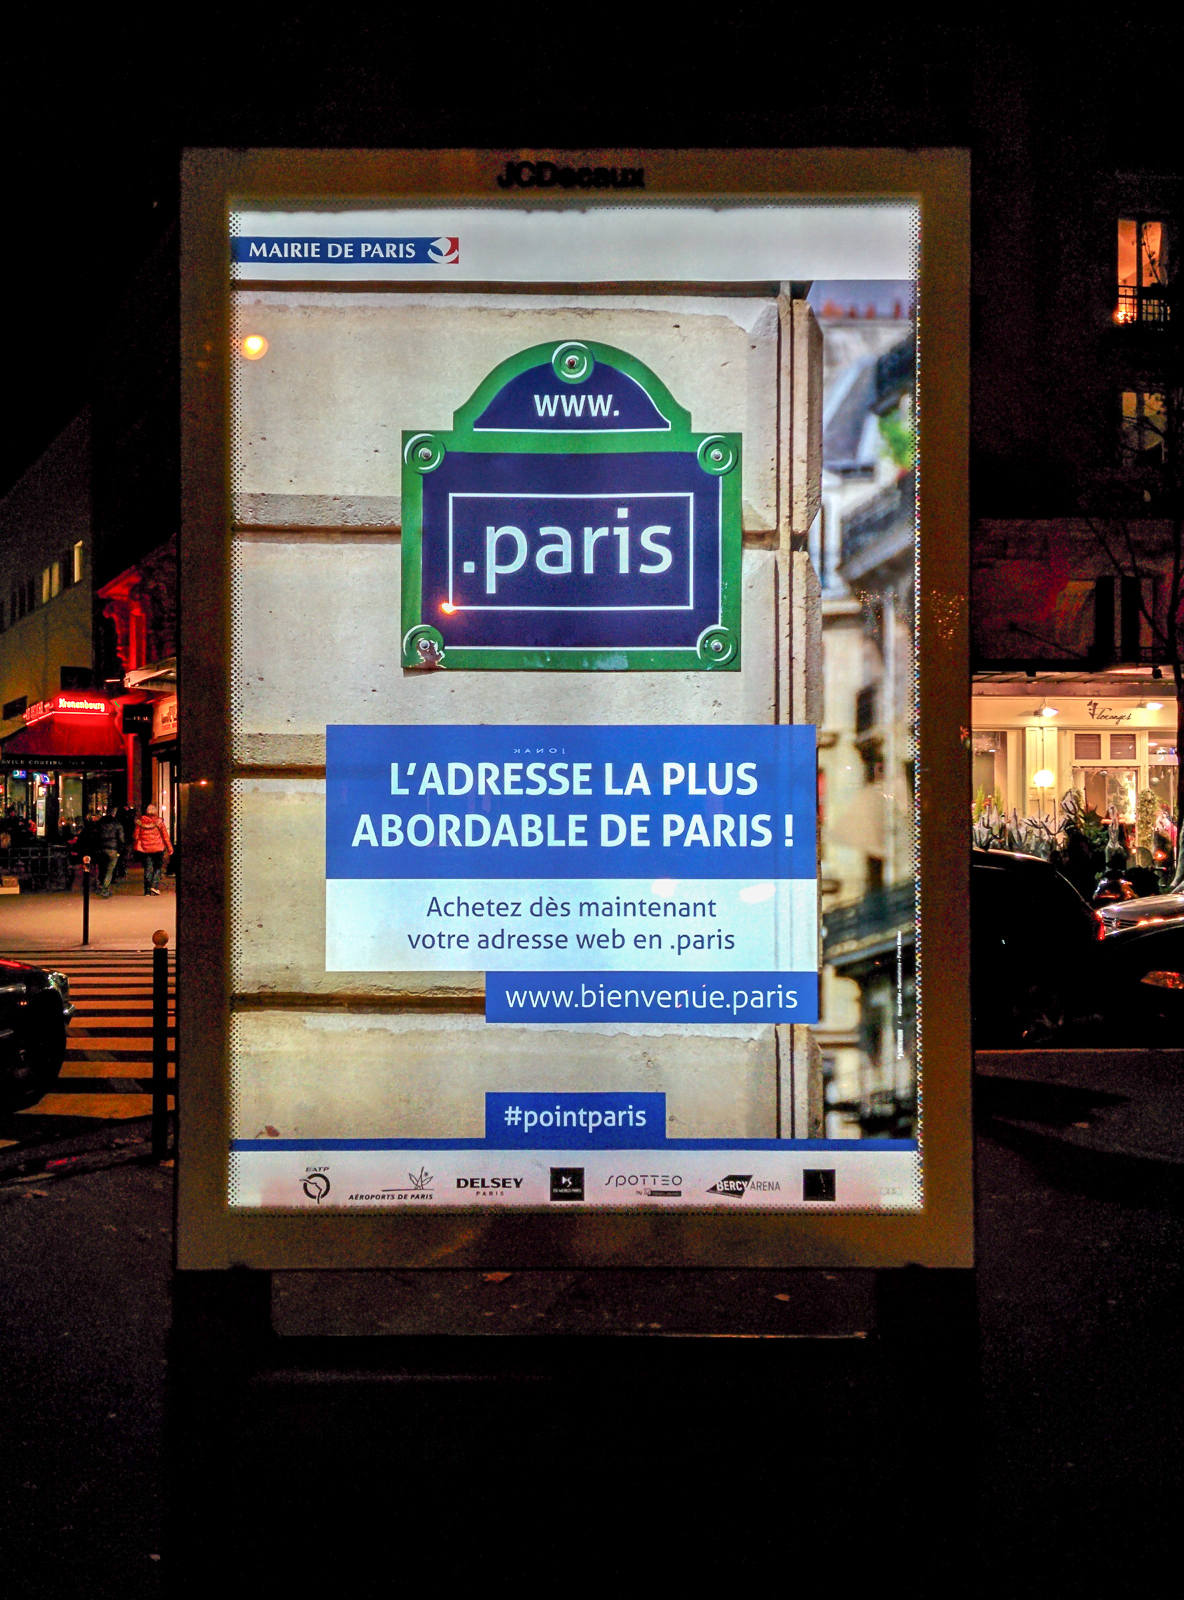 In France, an ad exhorts people to register Internet addresses ending in the new .paris domain name.